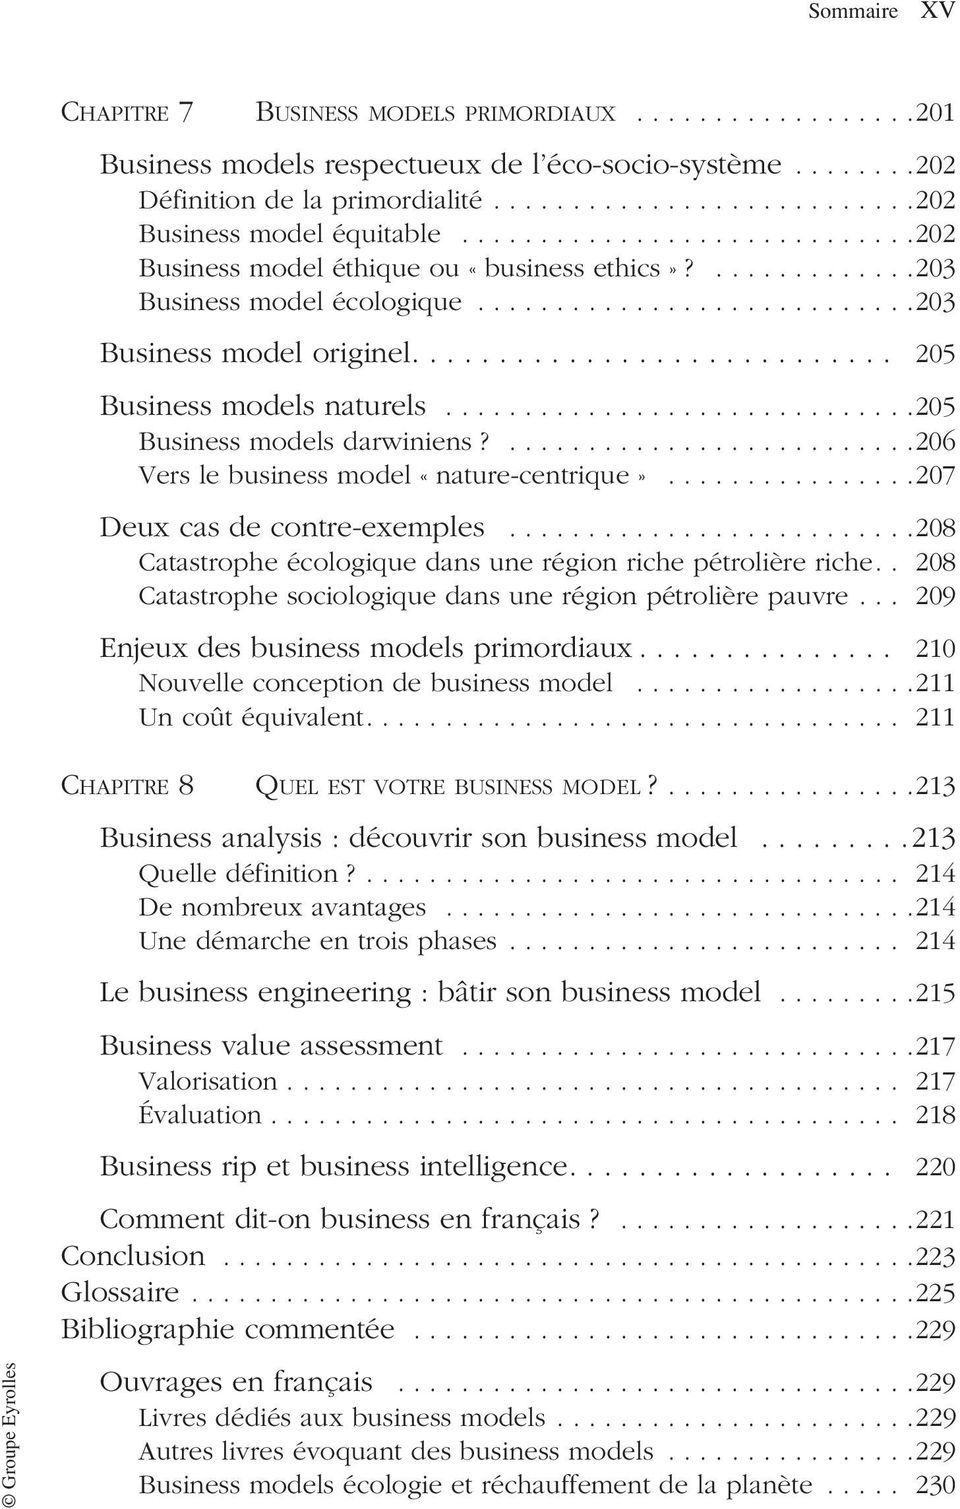 ........................... 205 Business models naturels..............................205 Business models darwiniens?..........................206 Vers le business model «nature-centrique».